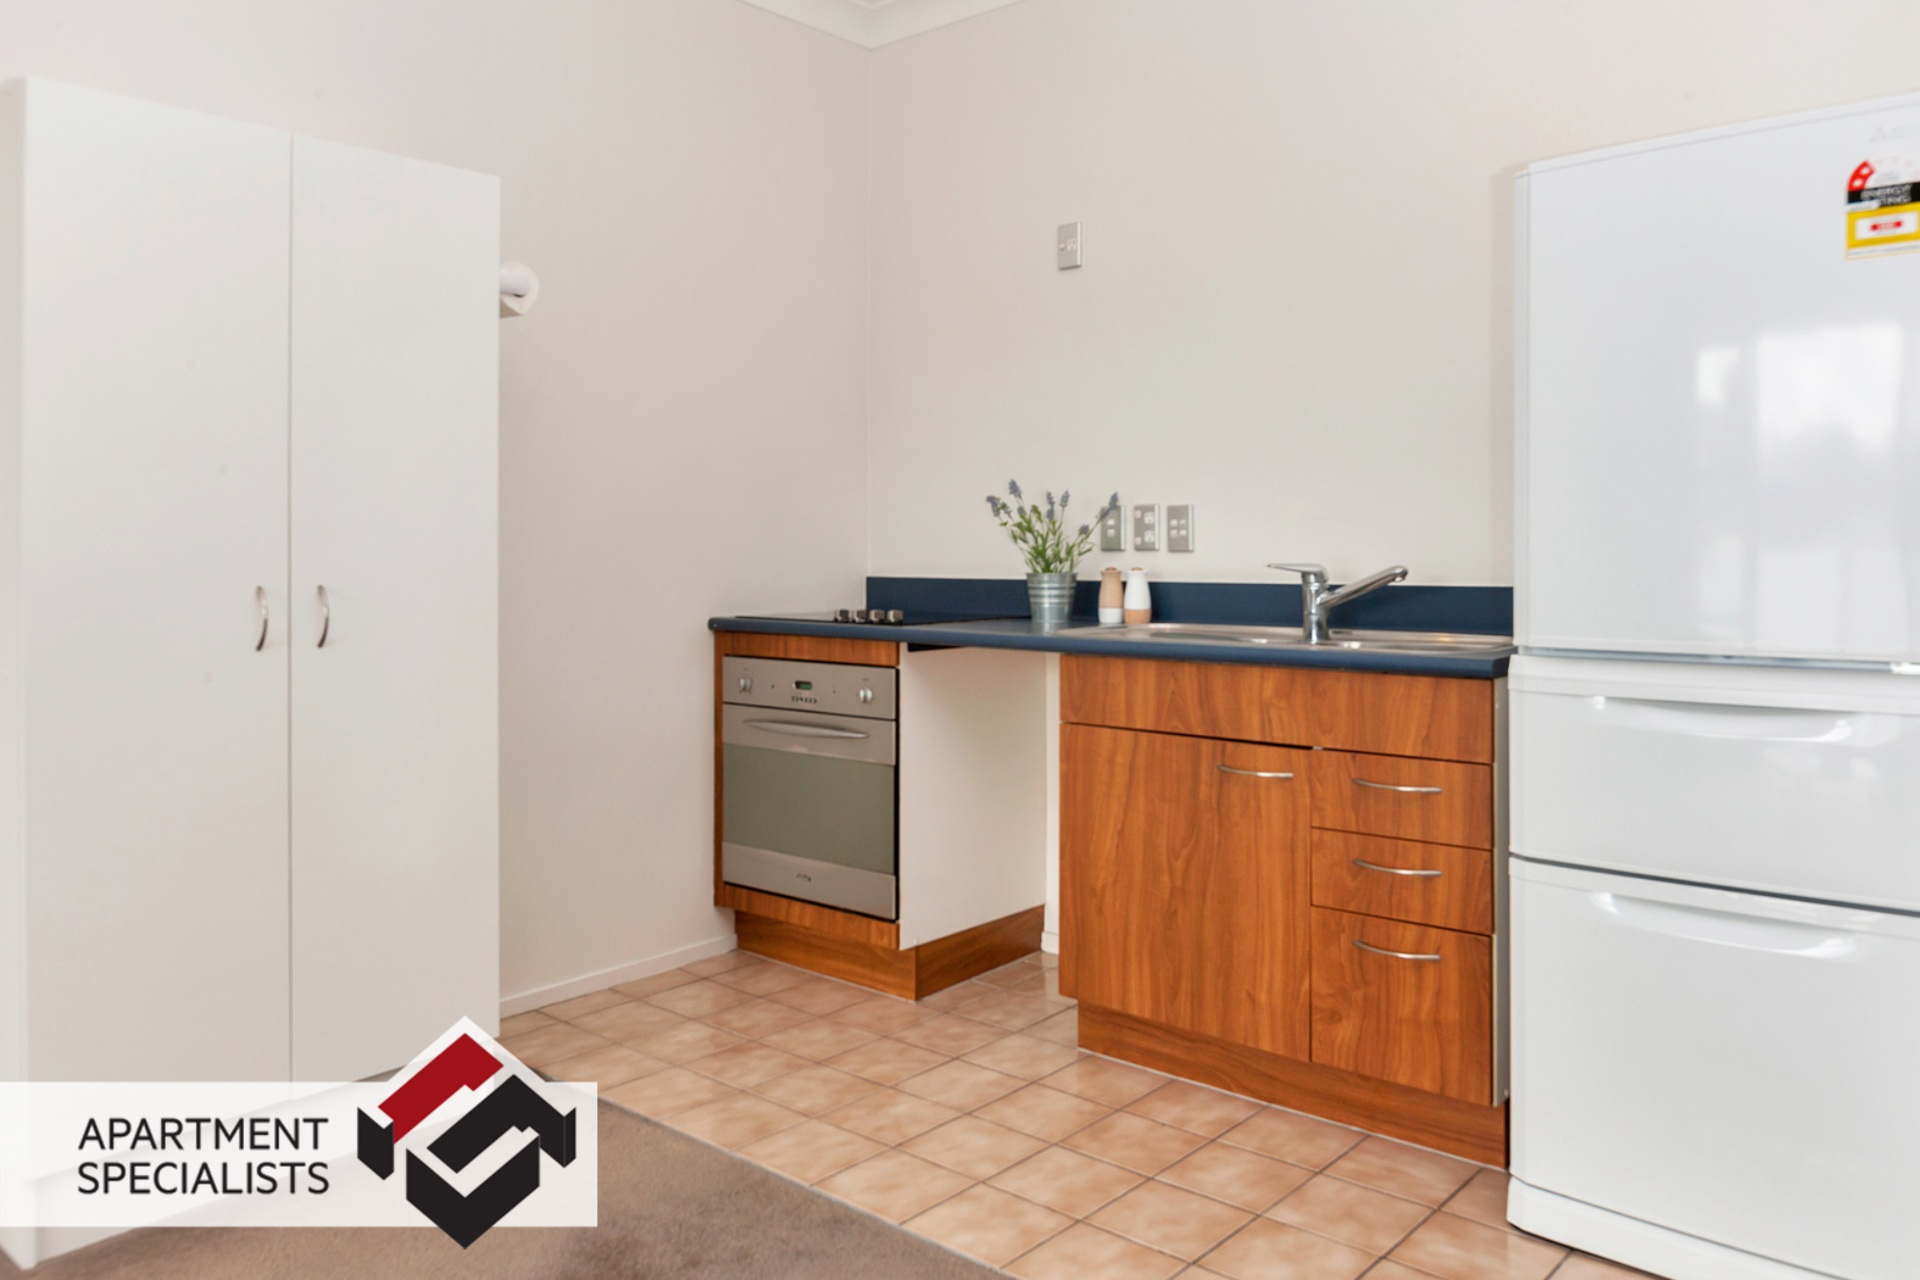 3 | 3 Morningside Drive, Kingsland | Apartment Specialists